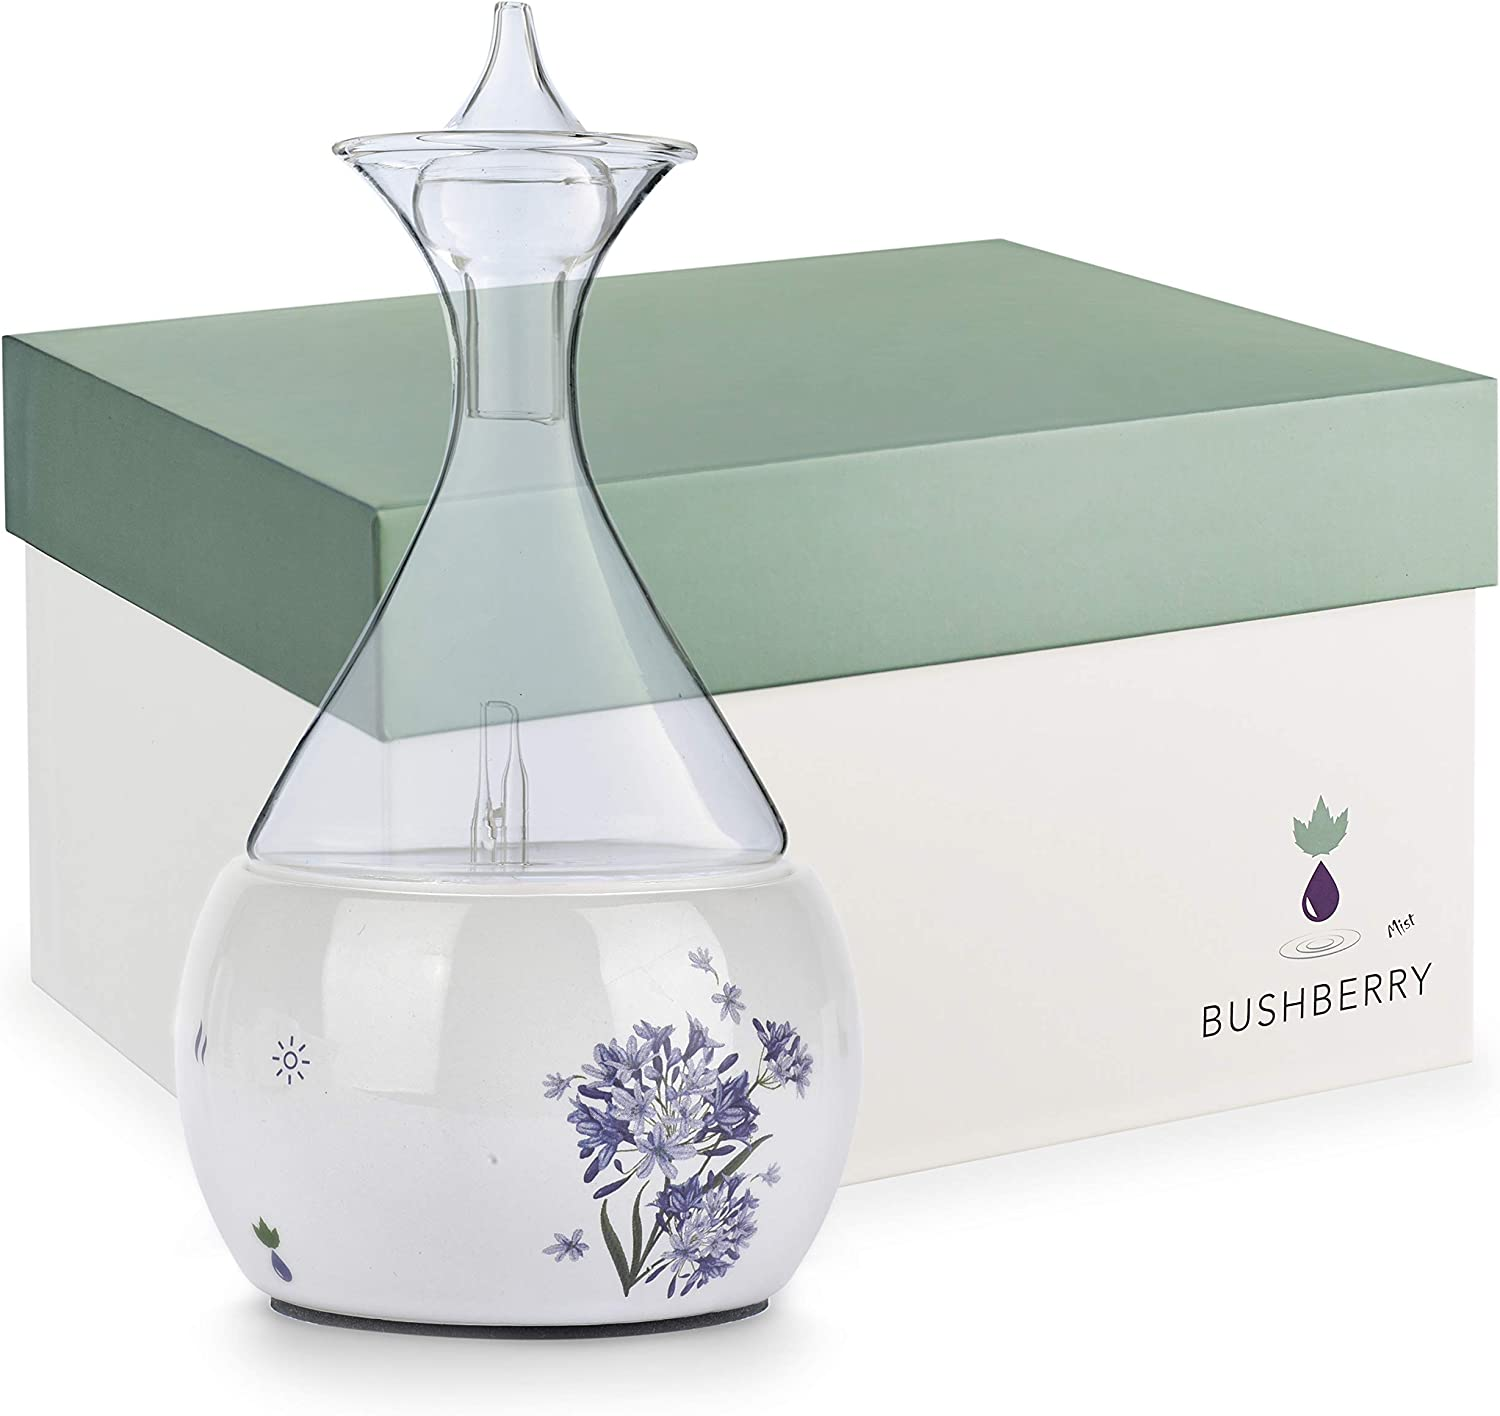 Waterless Nebulizing Essential Oil Diffuser from Ceramic & Glass, Non-Toxic Pure Scents Nebulizer, Stylish Aromatherapy Atomizer and Vaporizer for Home or Office. USB Powered. by Bushberry Mist